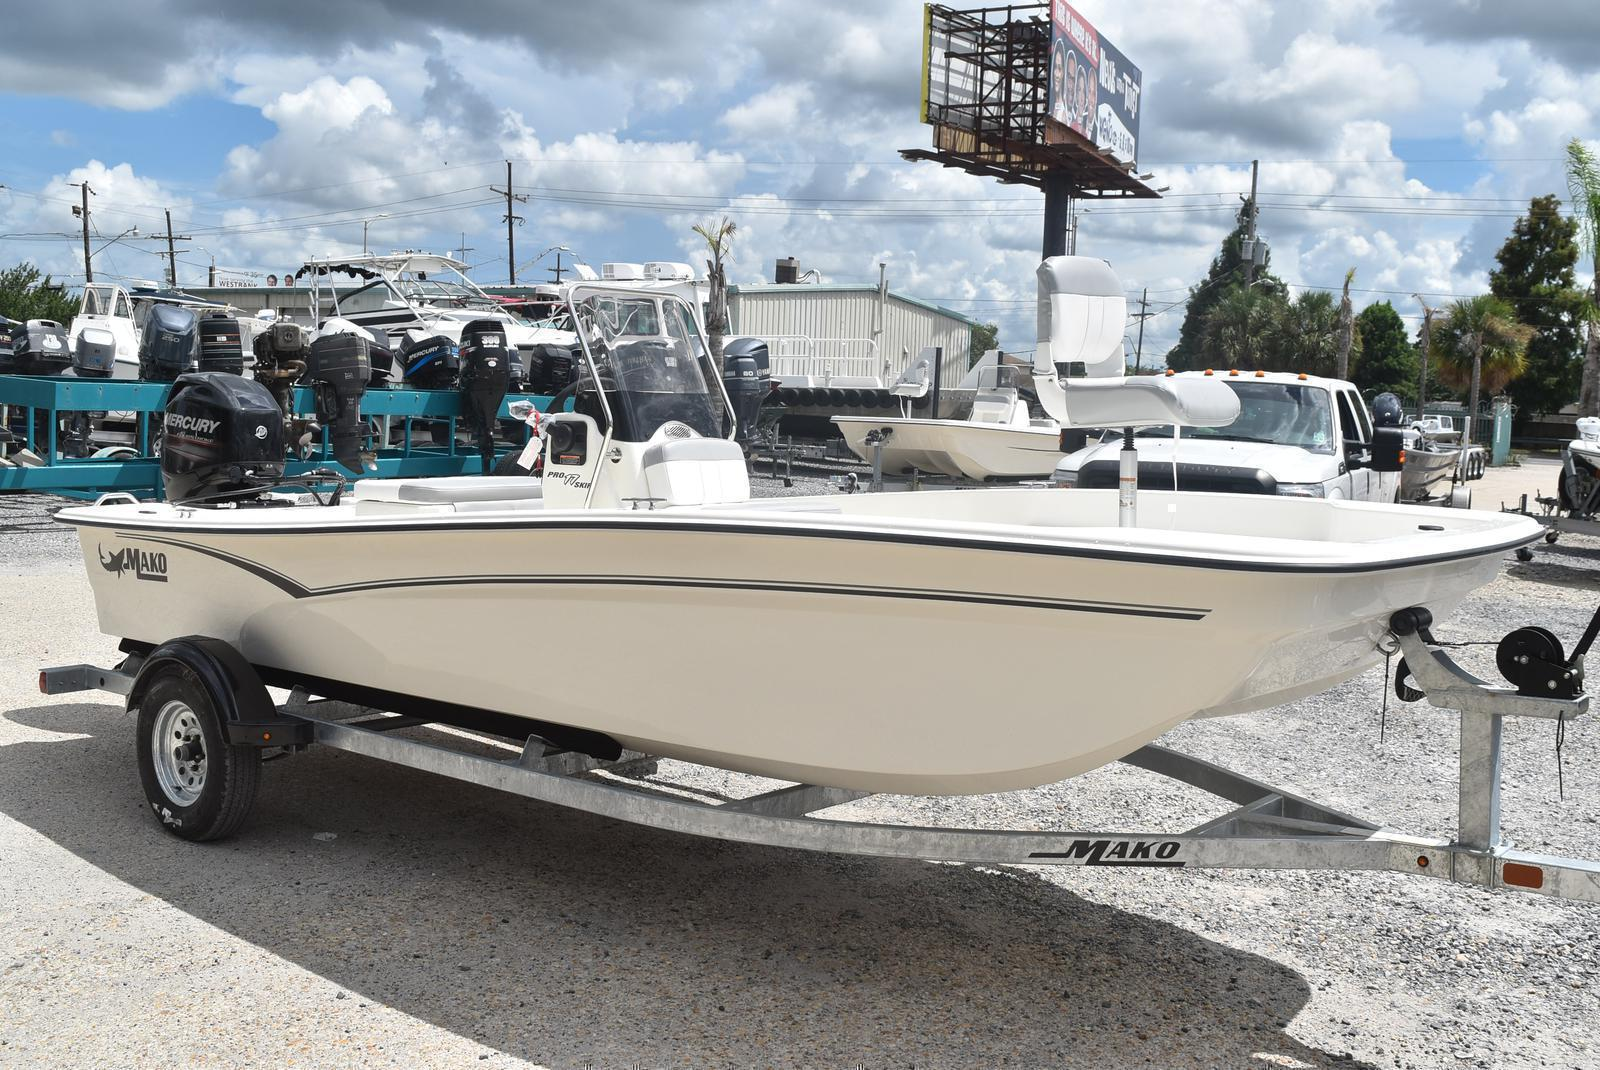 2020 Mako boat for sale, model of the boat is Pro Skiff 17, 75 ELPT & Image # 657 of 702